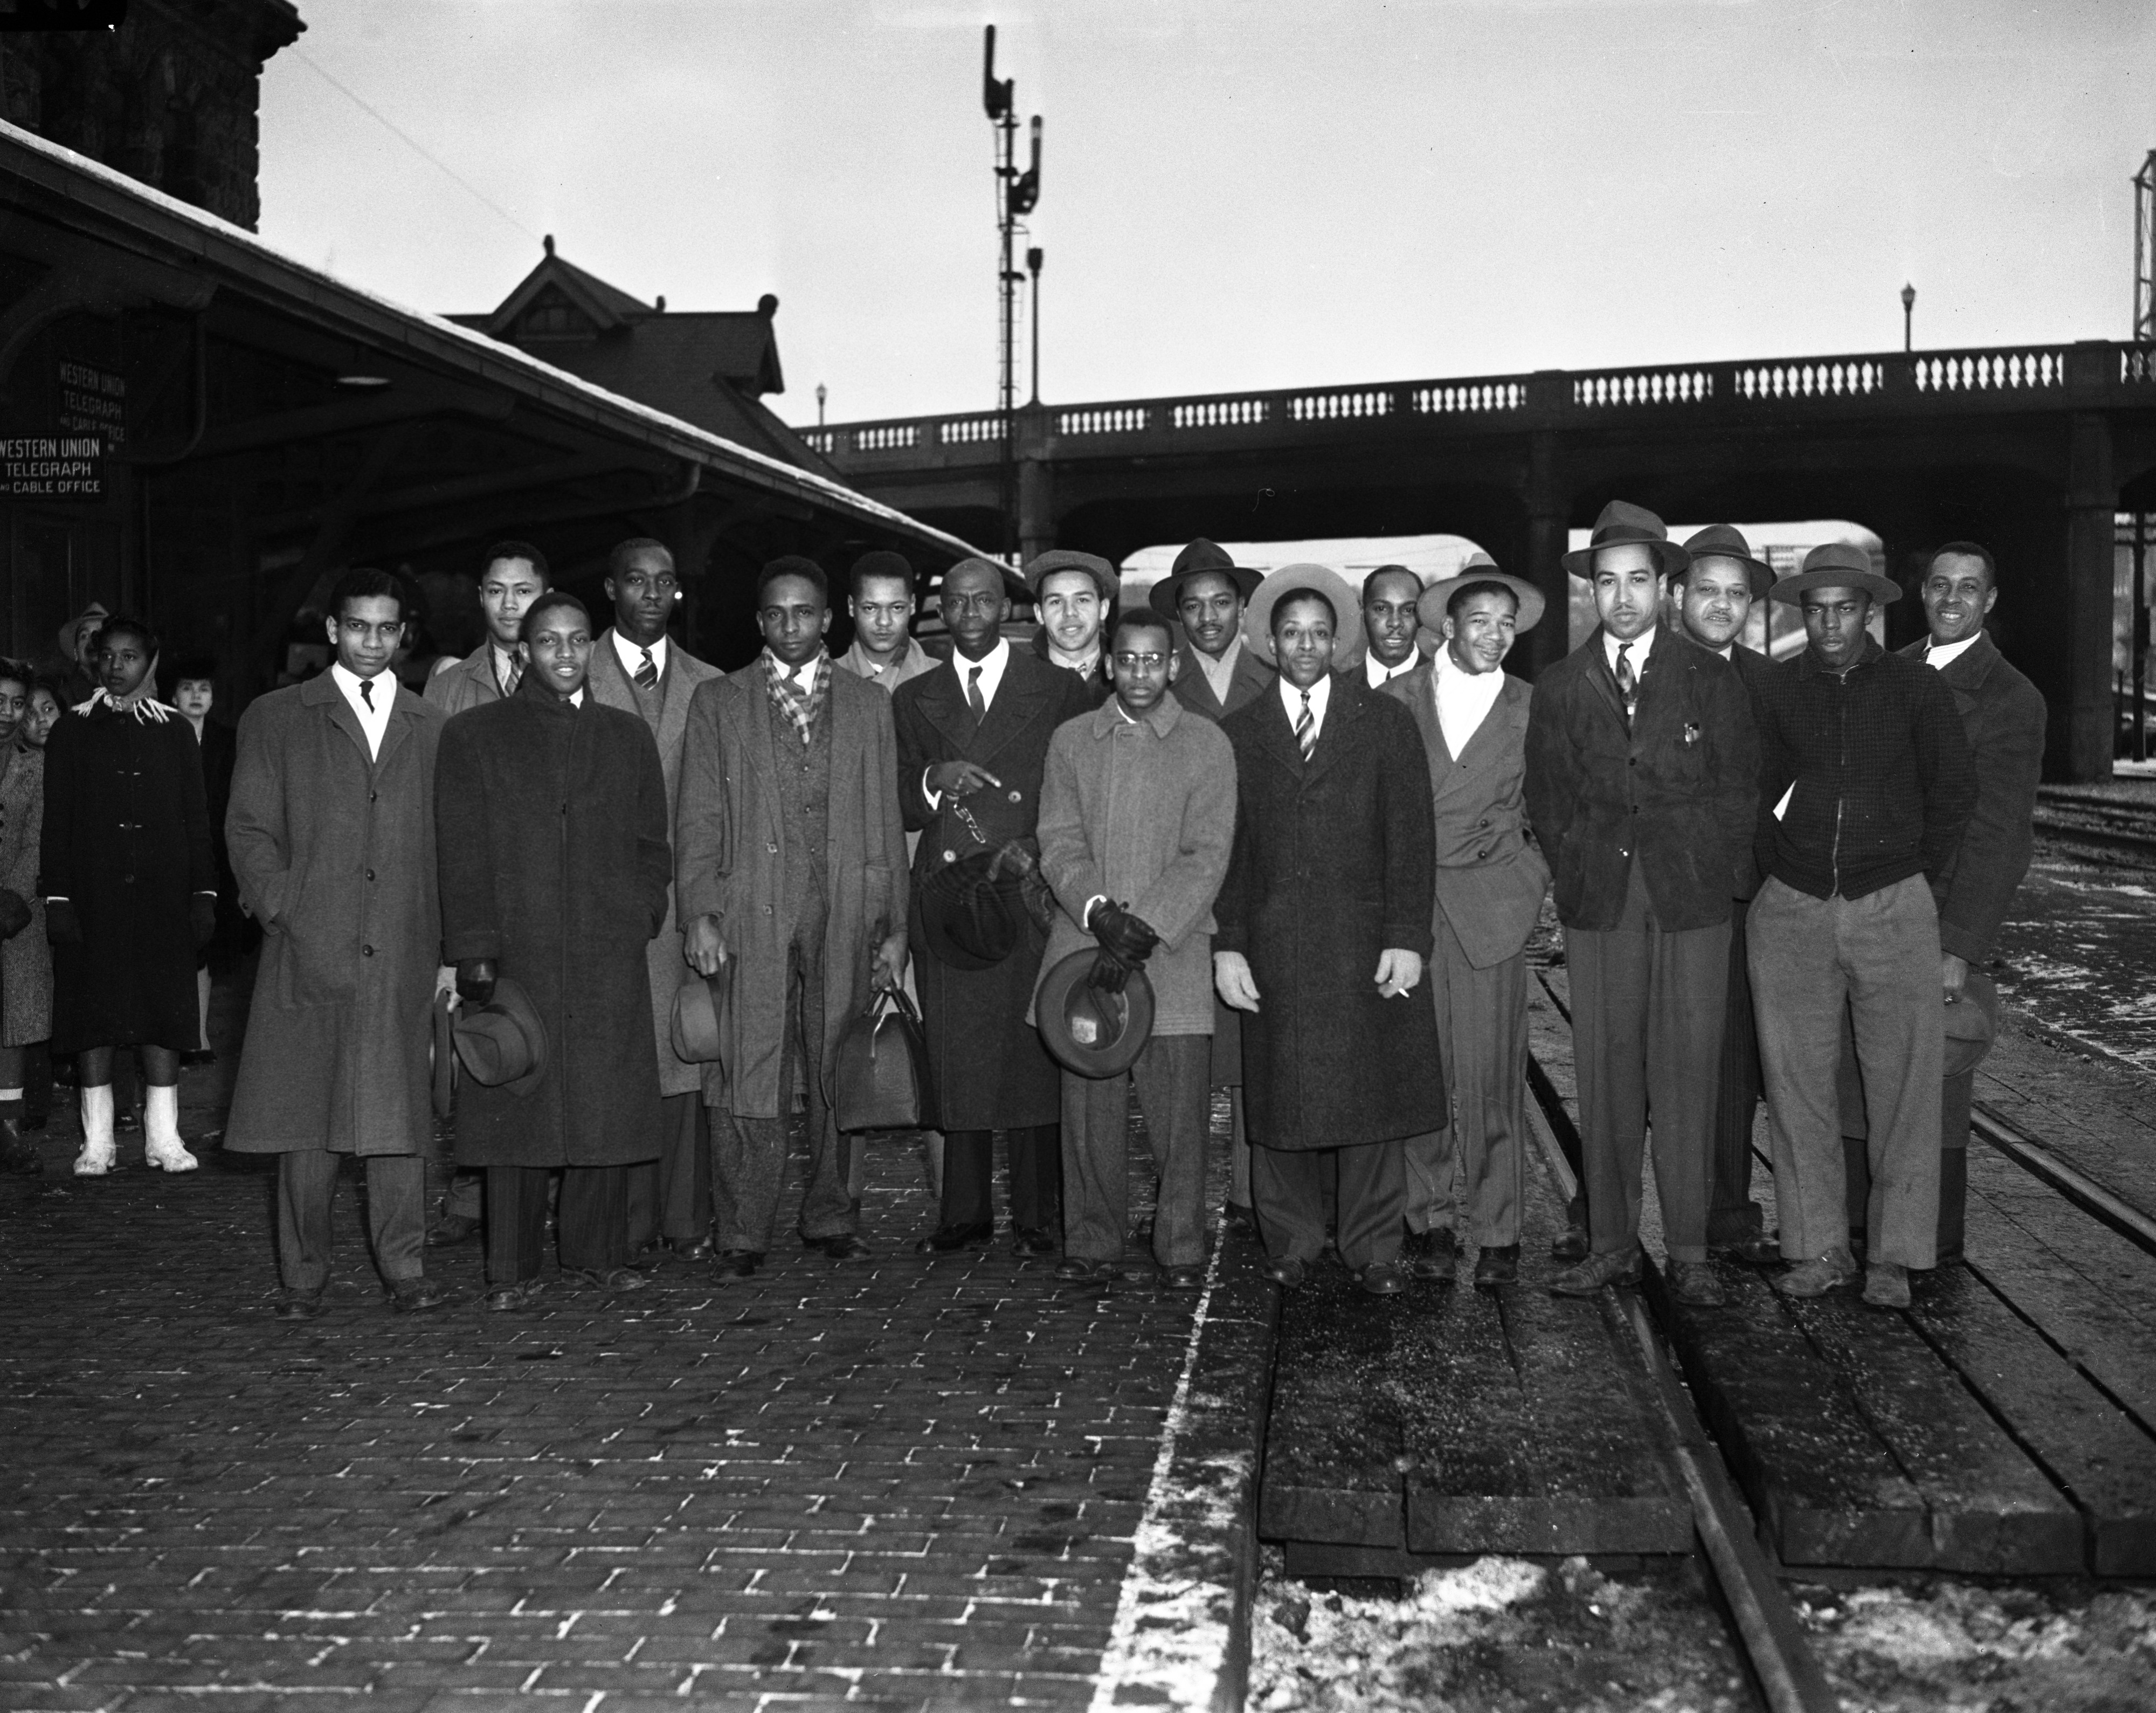 Draftees at the Michigan Central Railroad Depot, December 7, 1942 image